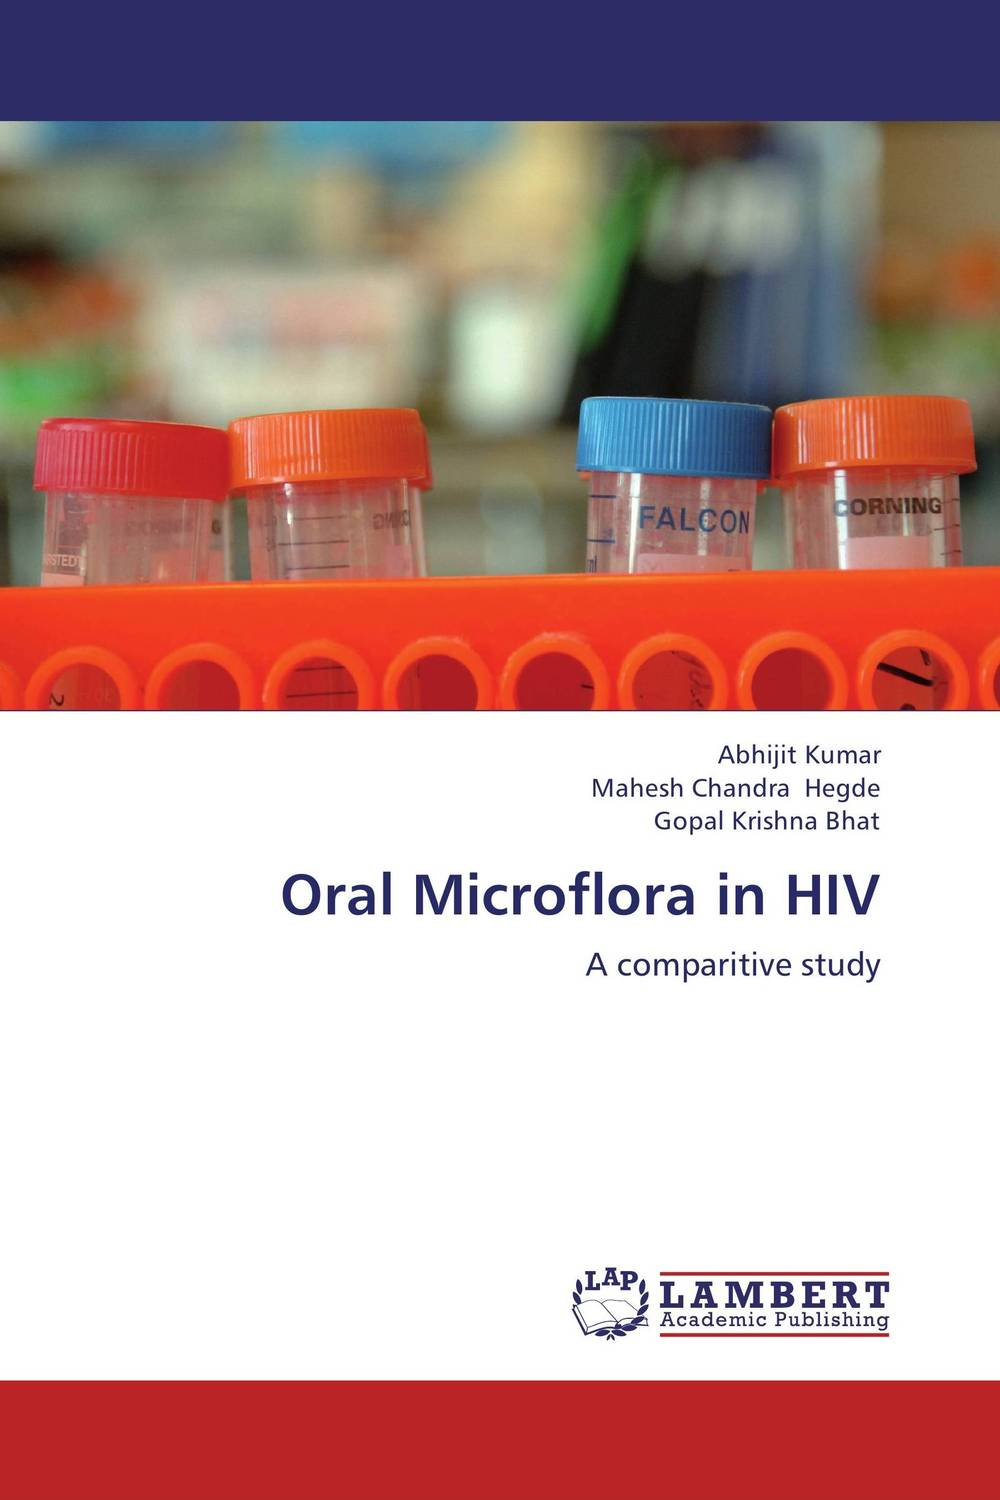 Oral Microflora in HIV peter lockhart b oral medicine and medically complex patients